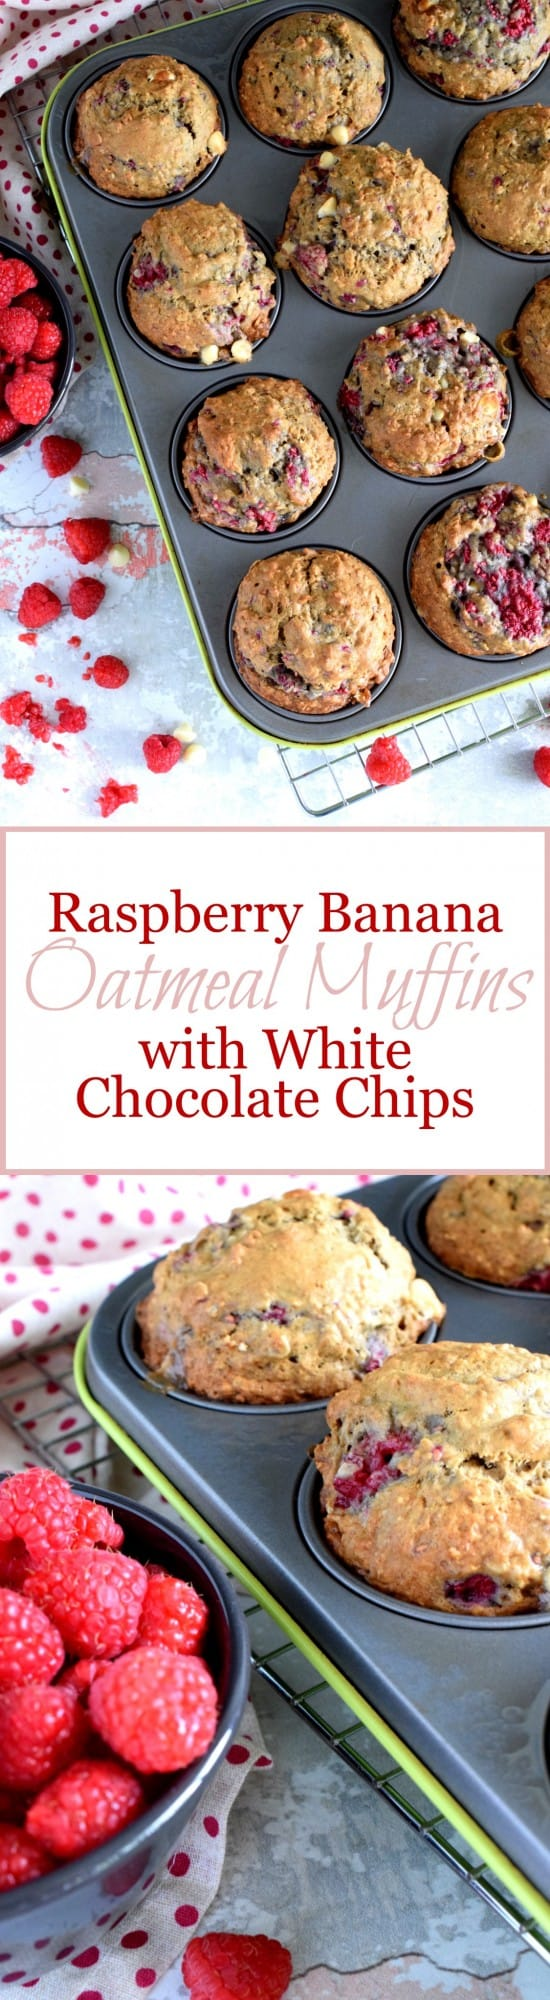 Raspberry Banana Oatmeal Muffins with White Chocolate Chips